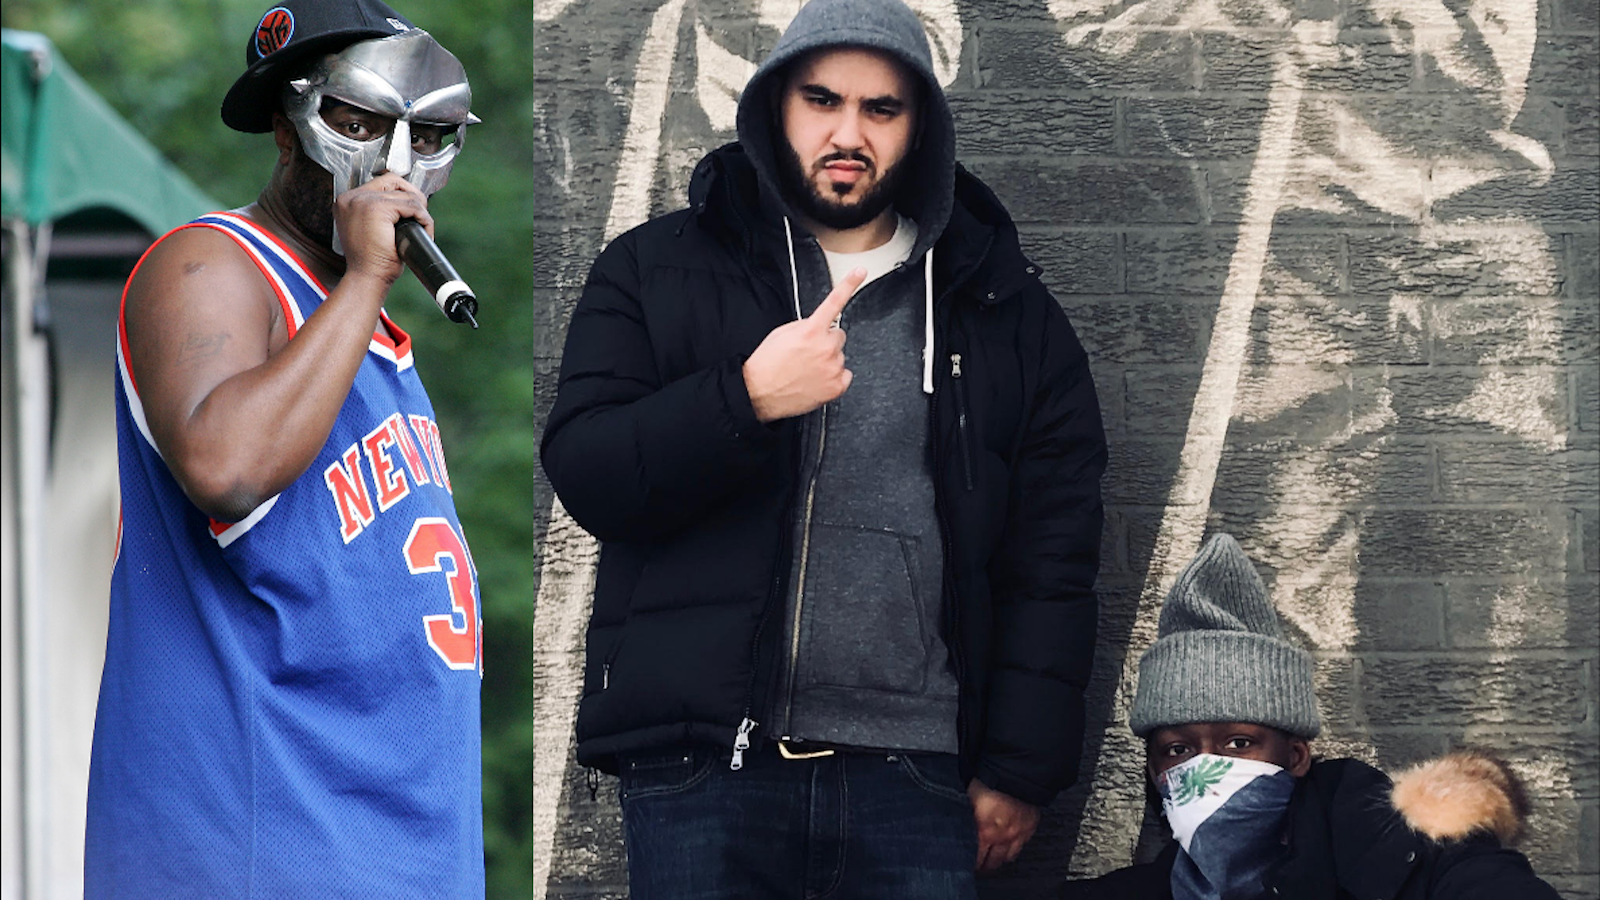 Your Old Droog, MF DOOM & Mach-Hommy RST Audio